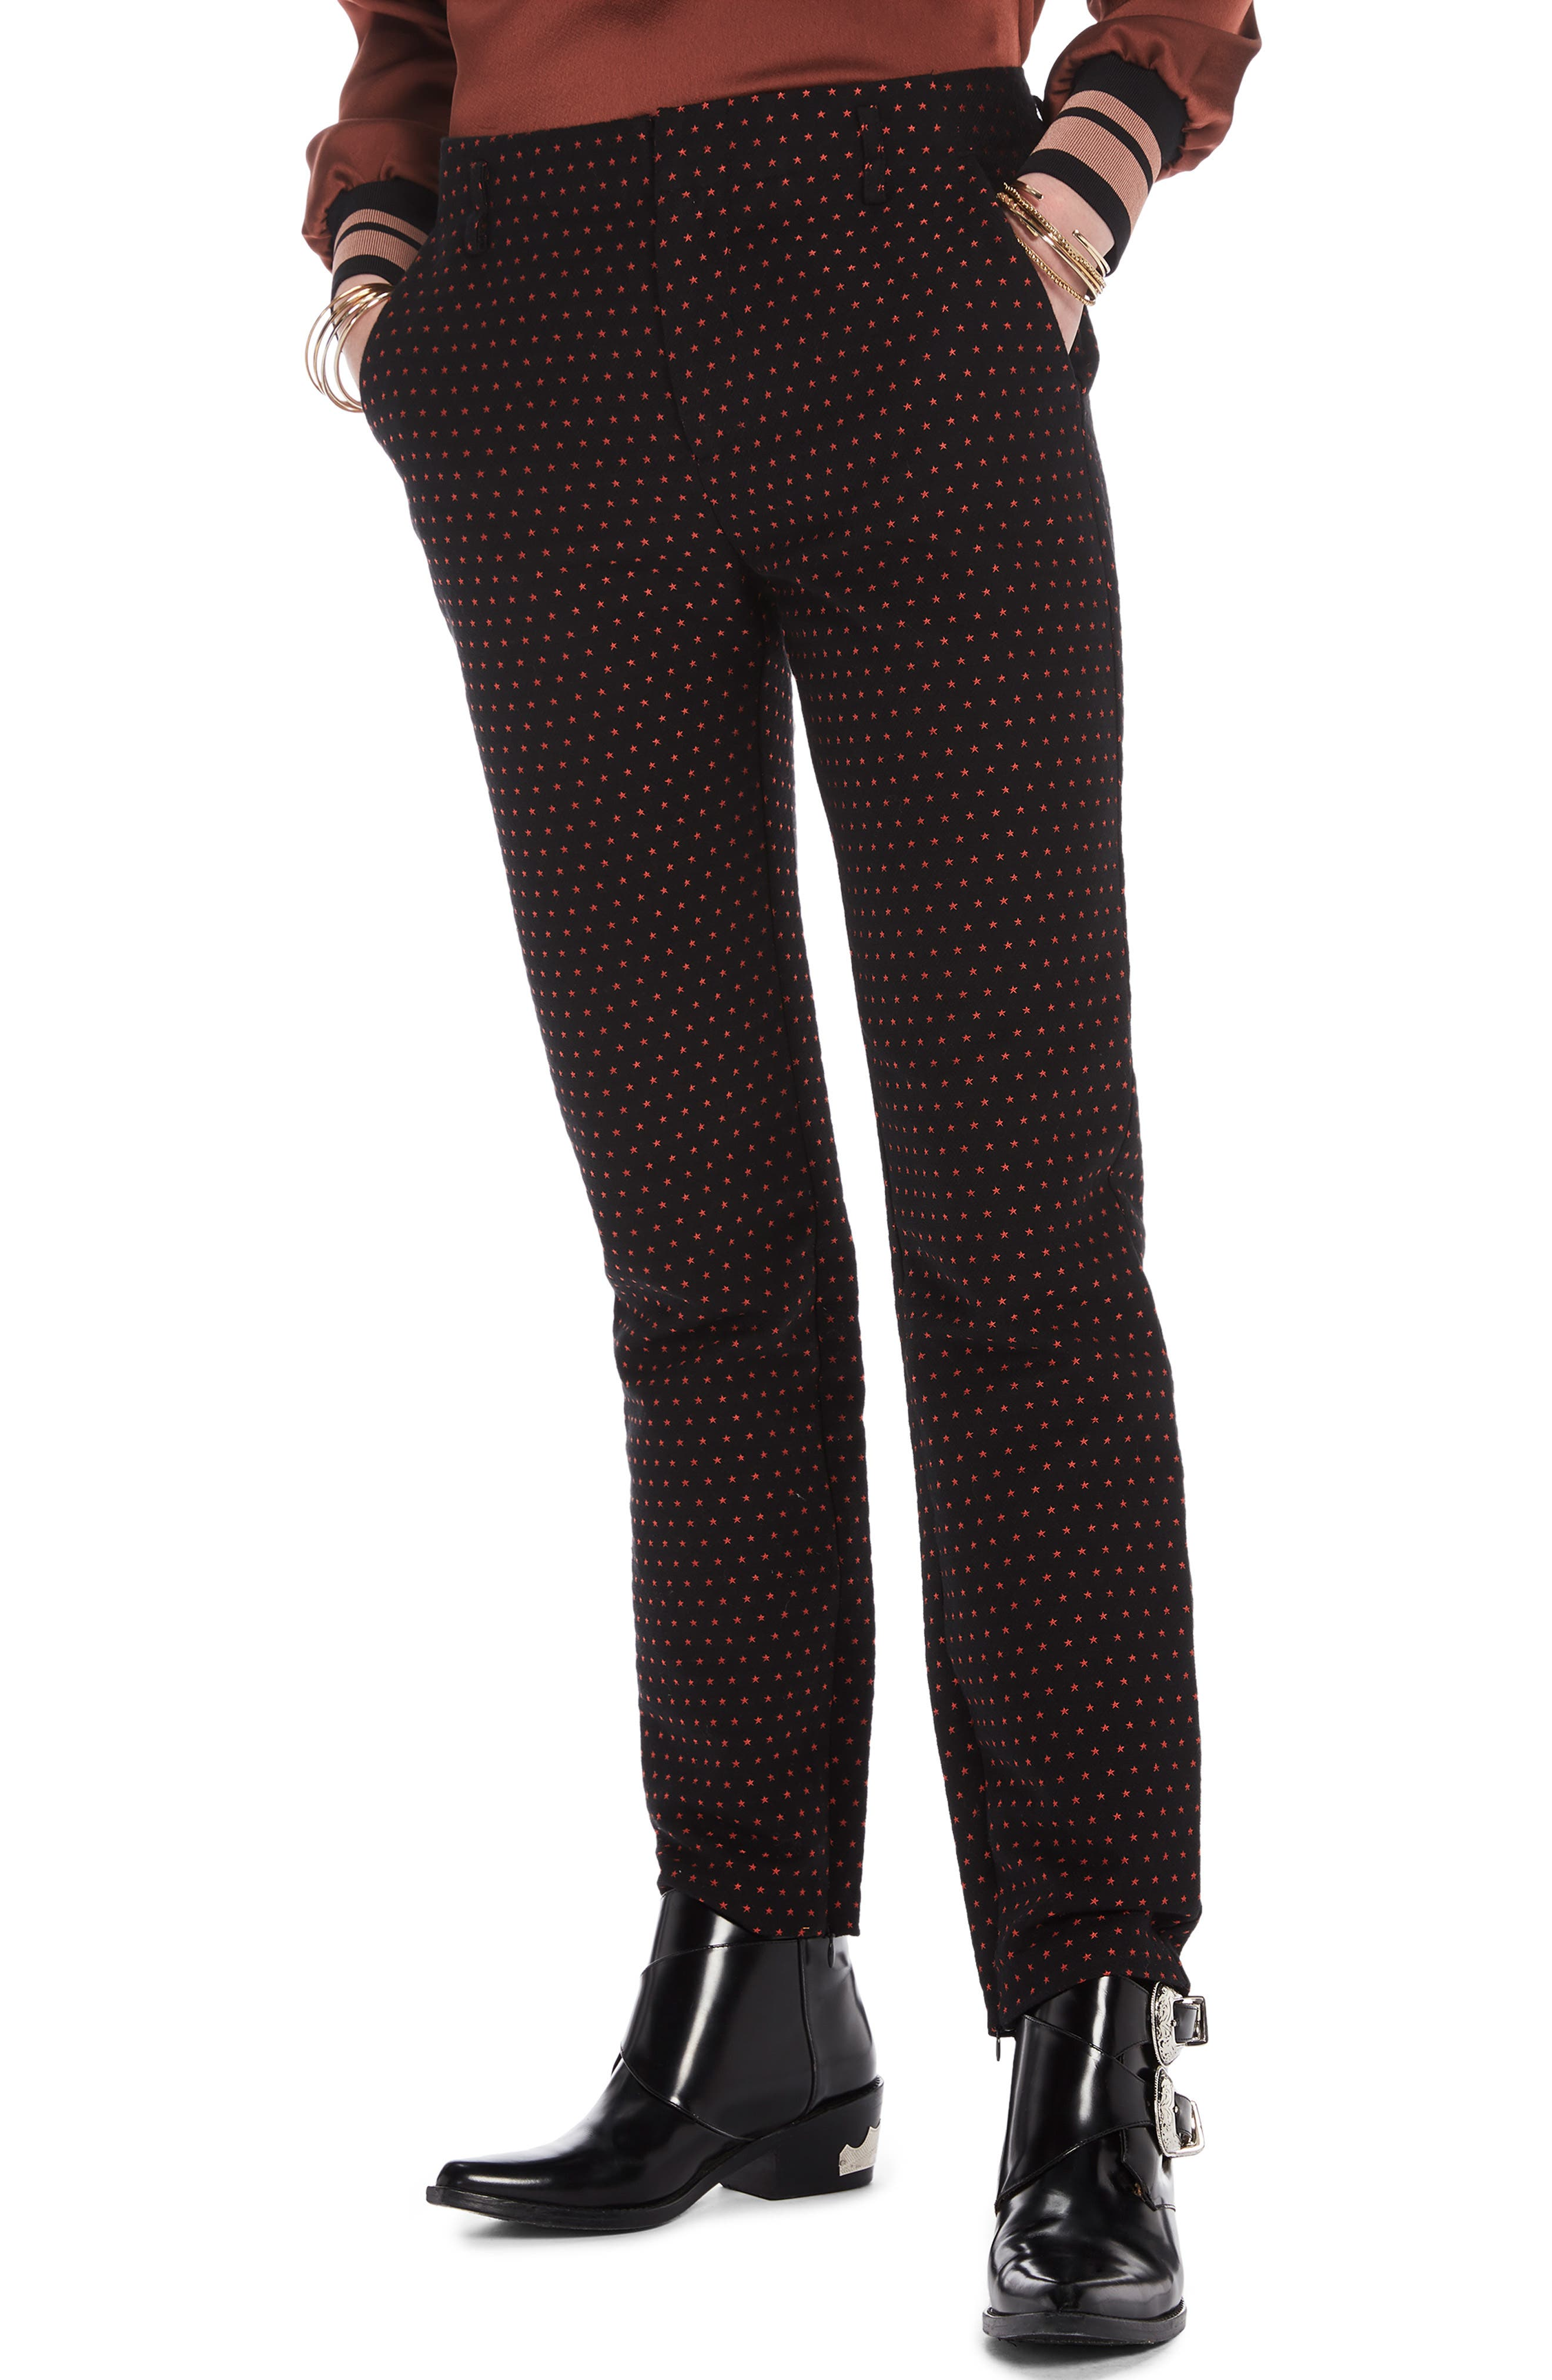 Starry Jacquard Tailored Stretch Pants,                         Main,                         color, BLACK W/ SMALL STAR PRINT